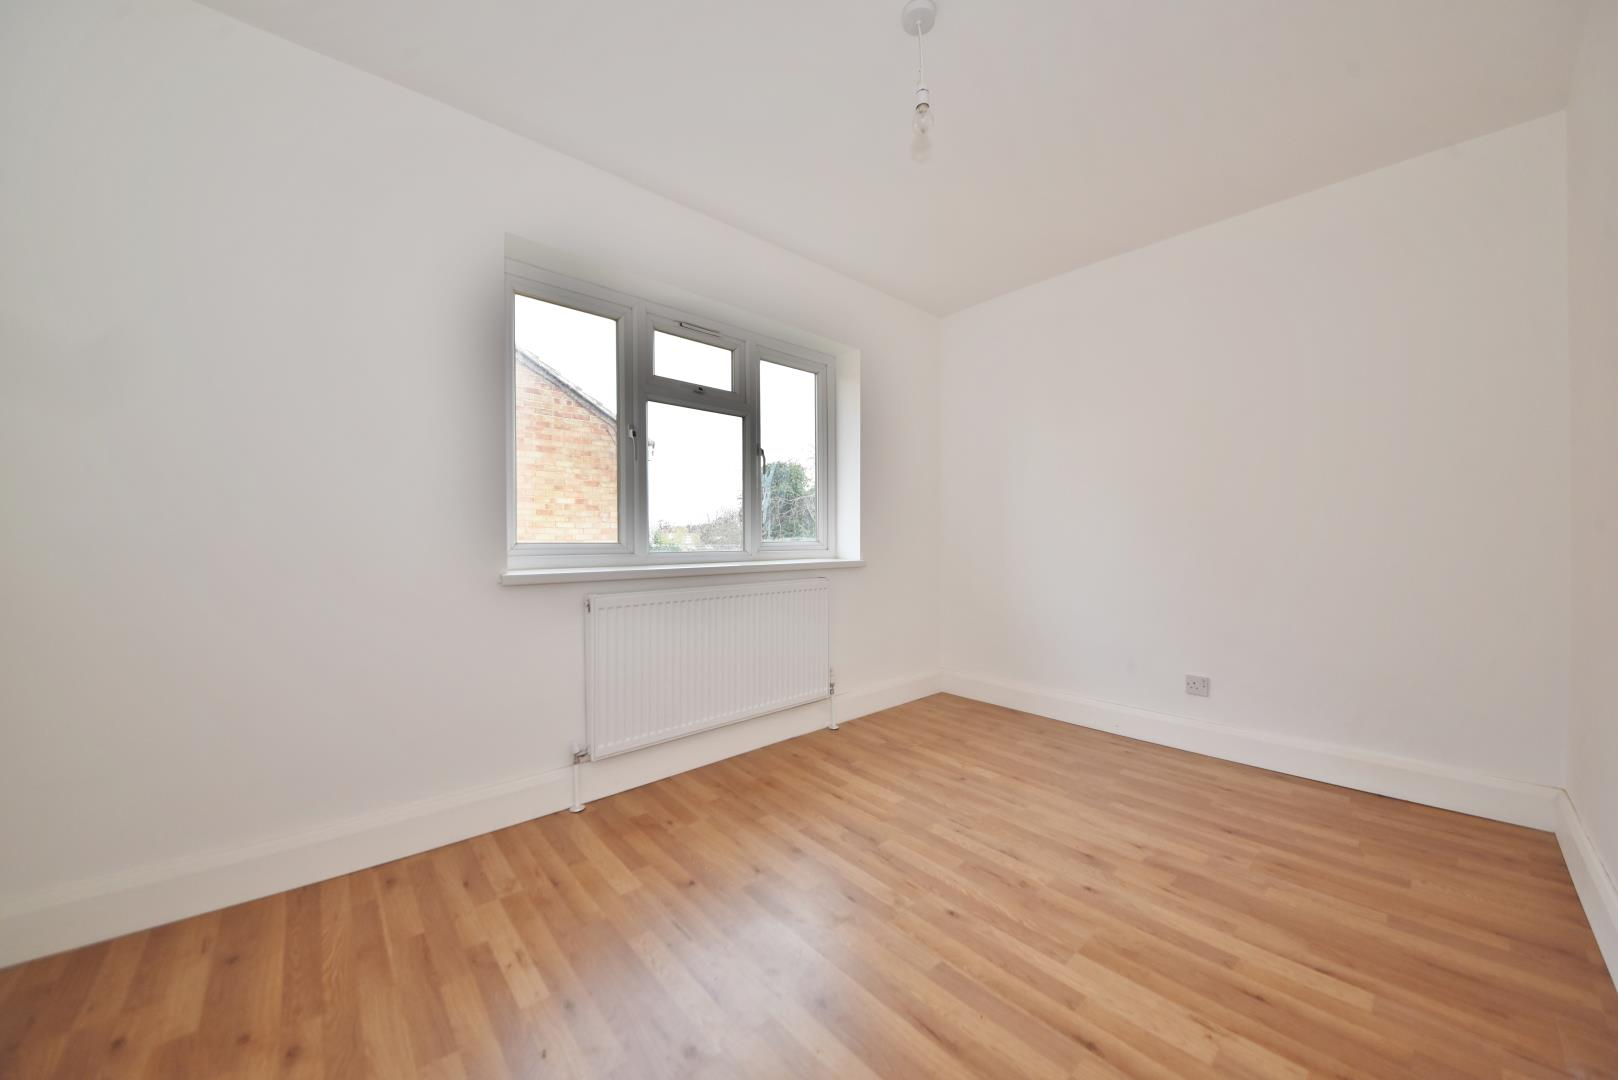 2 Bedroom Flat For Sale In Connaught Road Teddington Tw11 London